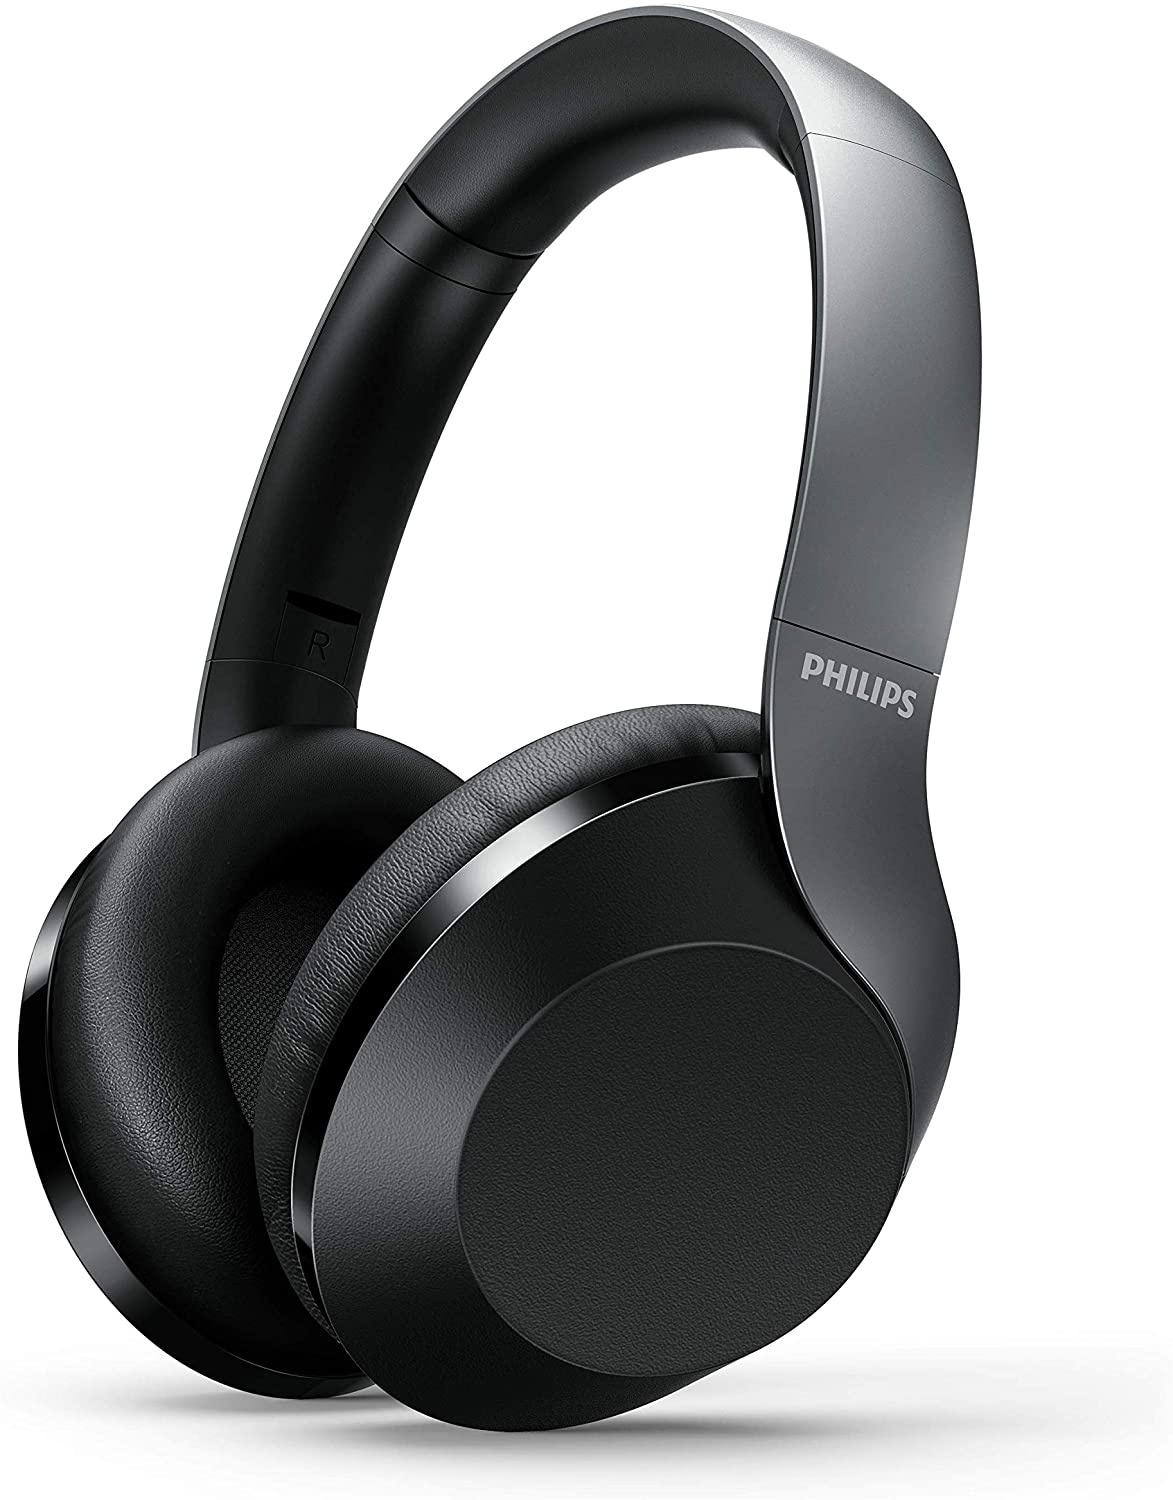 Philips PH805 Active Noise Canceling (ANC) Over Ear Wireless Bluetooth Performance Headphones w/Hi-Res Audio, Comfort Fit and 30 Hours of Playtime (TAPH805BK) myusamart